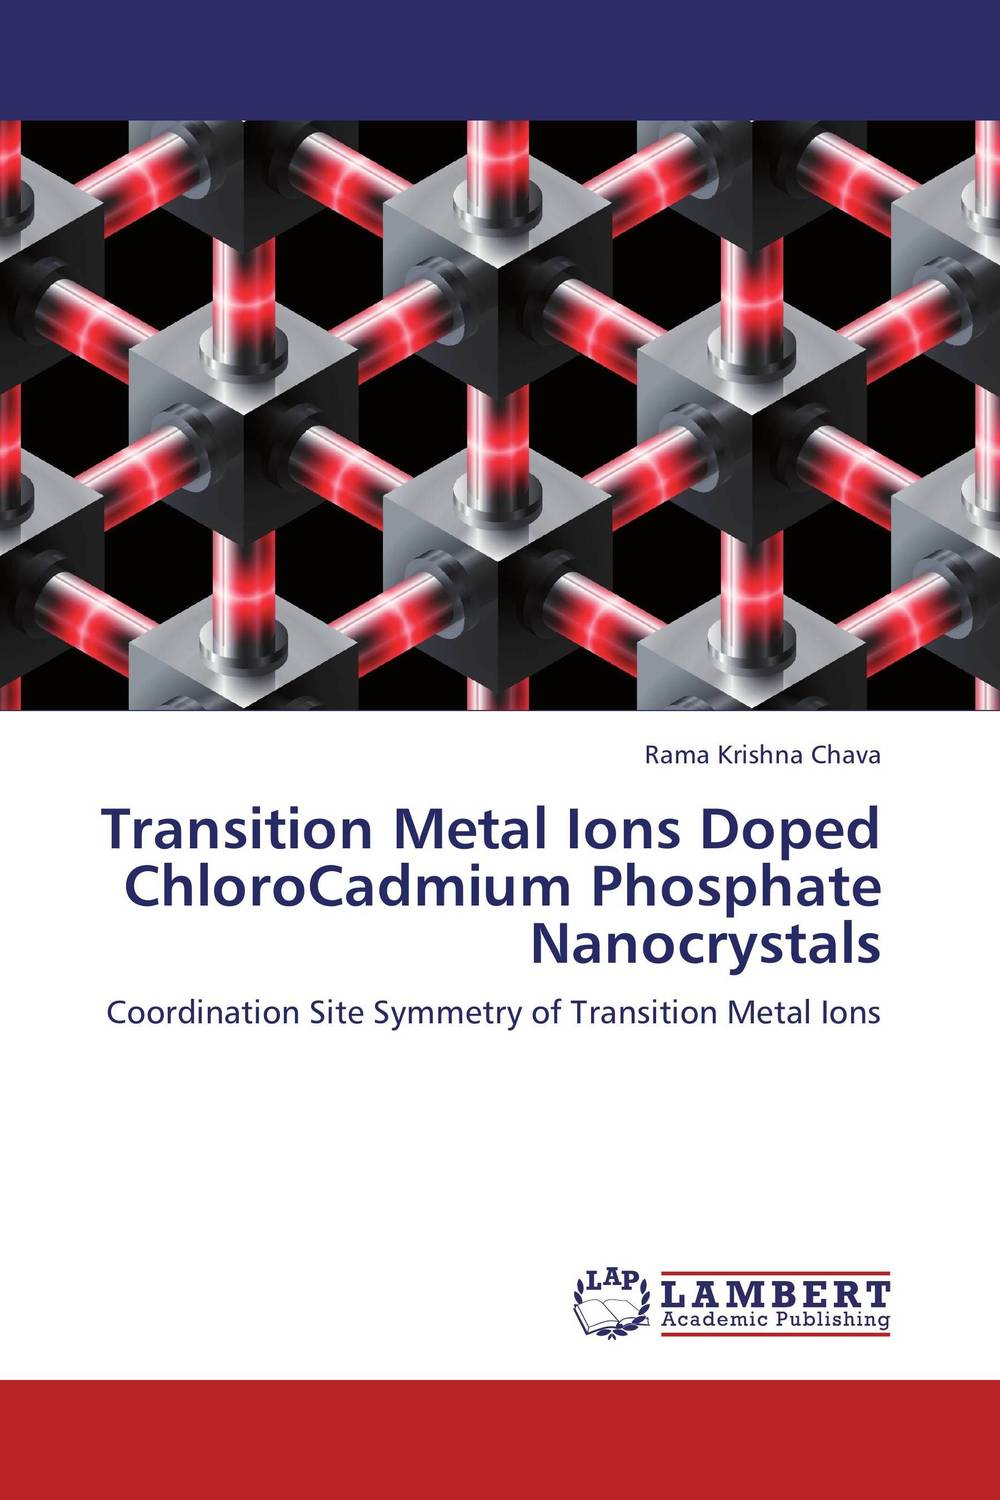 Transition Metal Ions Doped ChloroCadmium Phosphate Nanocrystals carbohydrate doped mgb2 superconductor for magnet application